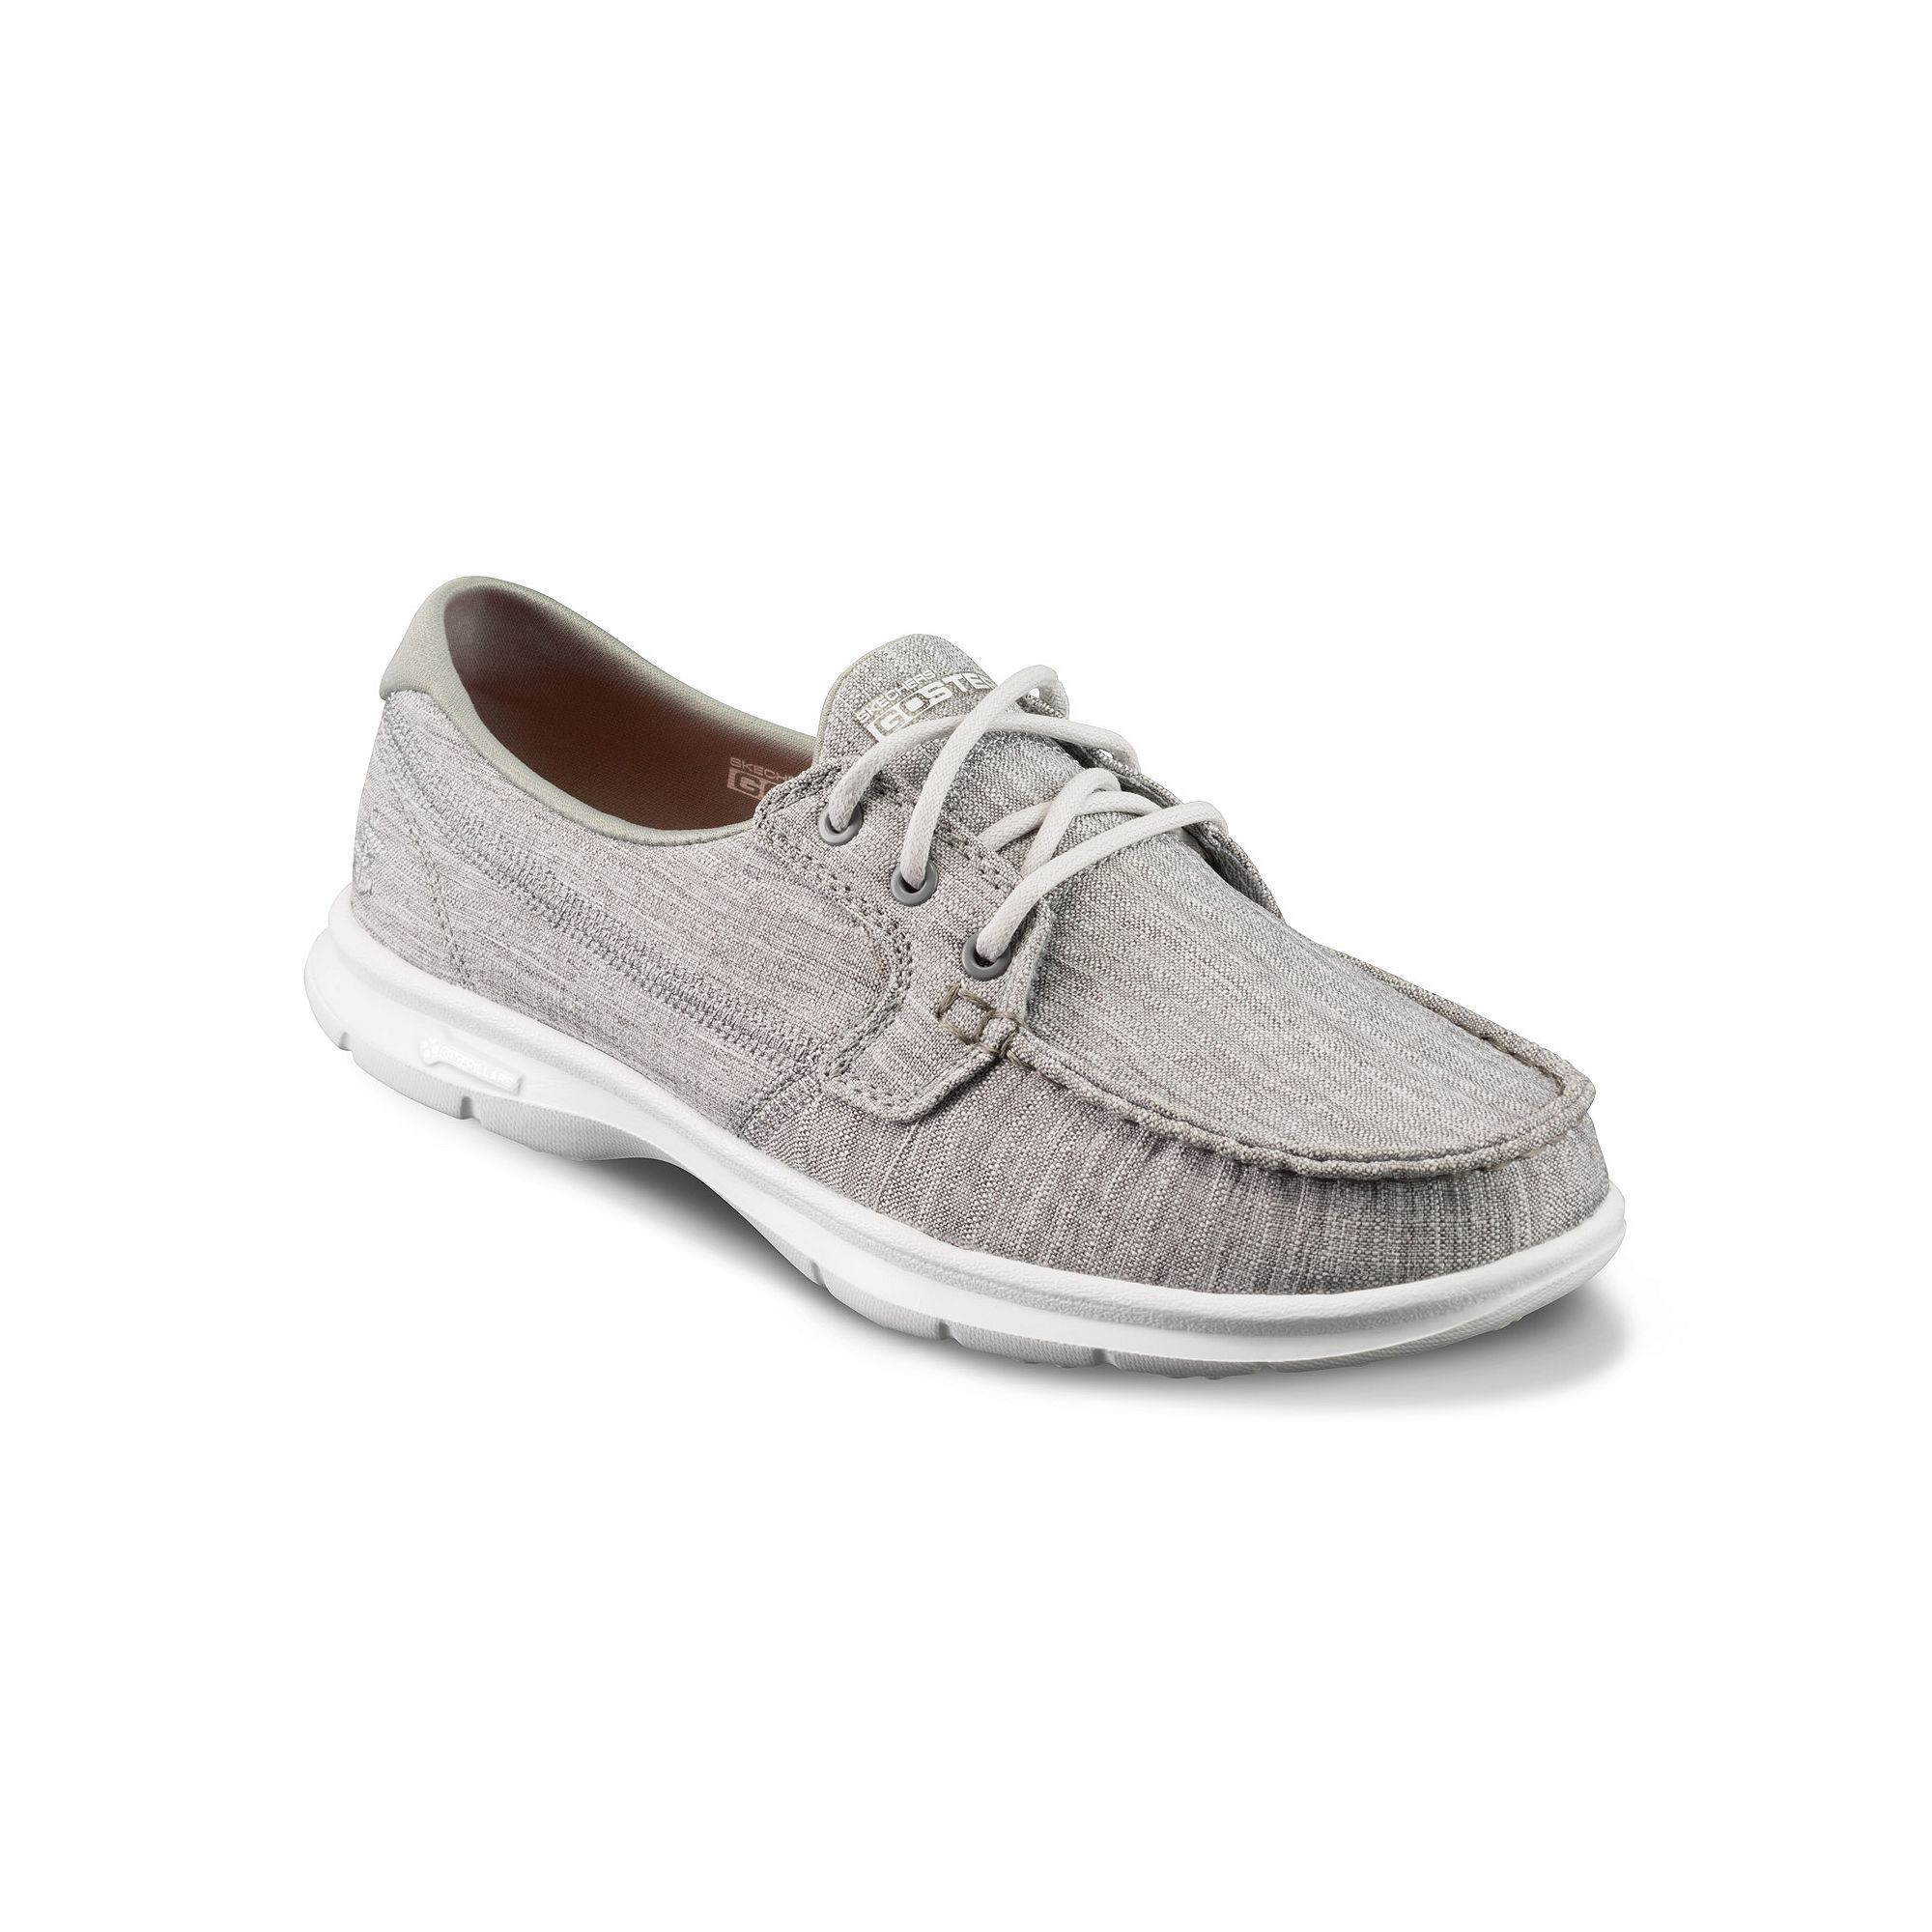 Skechers Go Step Boat Women's Shoes Size 7.5